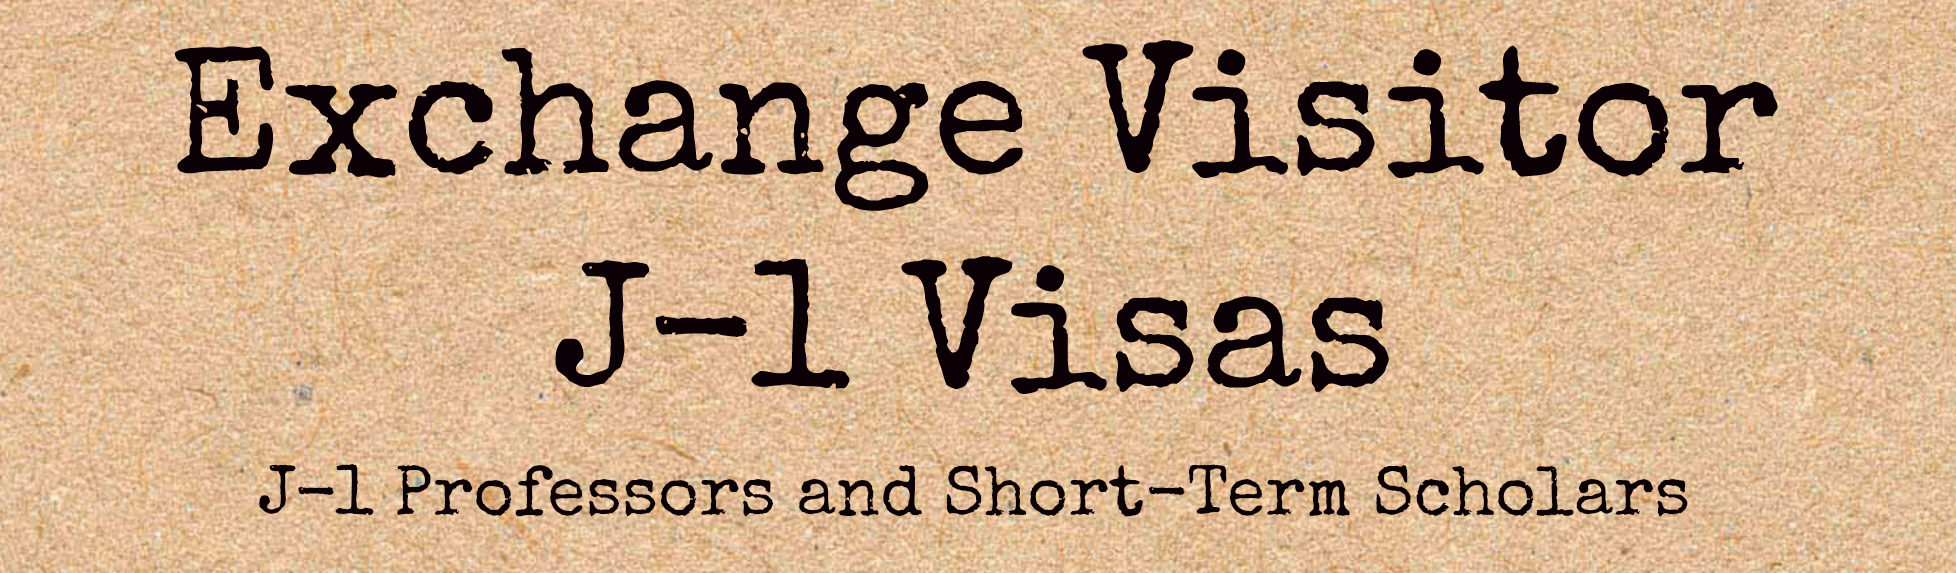 Exchange Visitor Banner